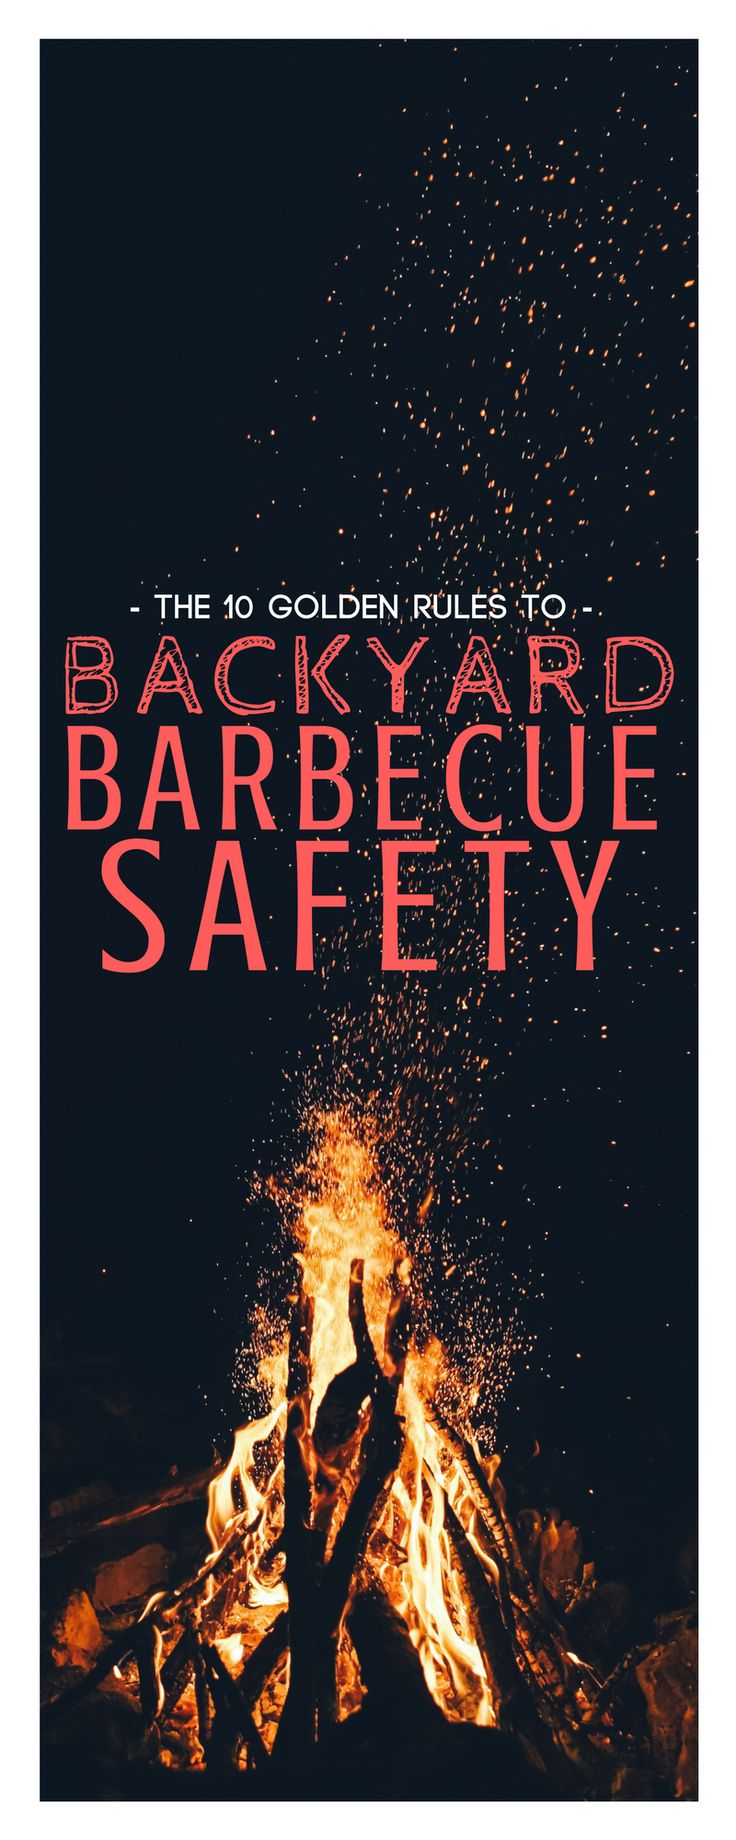 Before you fire up the grill or BBQ this summer make sure you are up to date with your safety! Gas BBQ Recipes | Gas Barbecue Recipes | Gas Smoker Recipes | Gas Grill Recipes | Best Gas Grill Recipes | Best Gas Smoker Recipes | Best Gas BBQ Recipes | Best